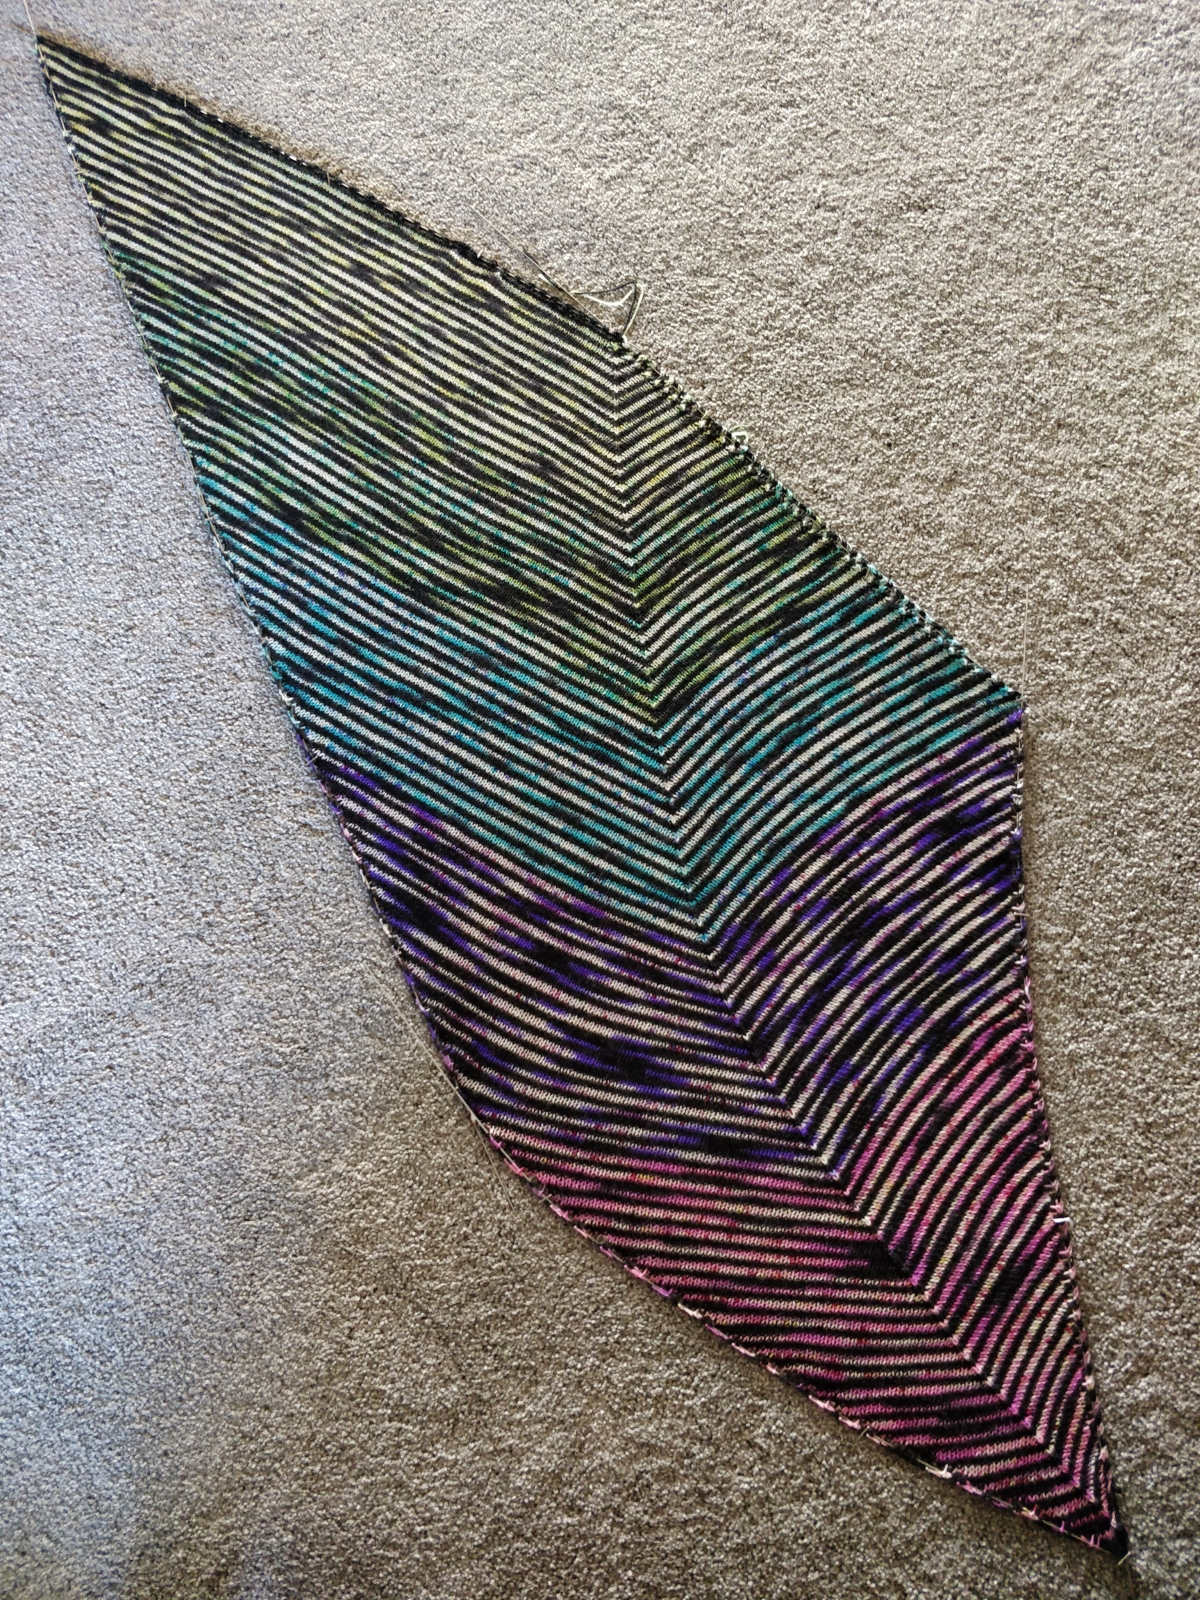 The Which Way shawl, pinned out on the floor